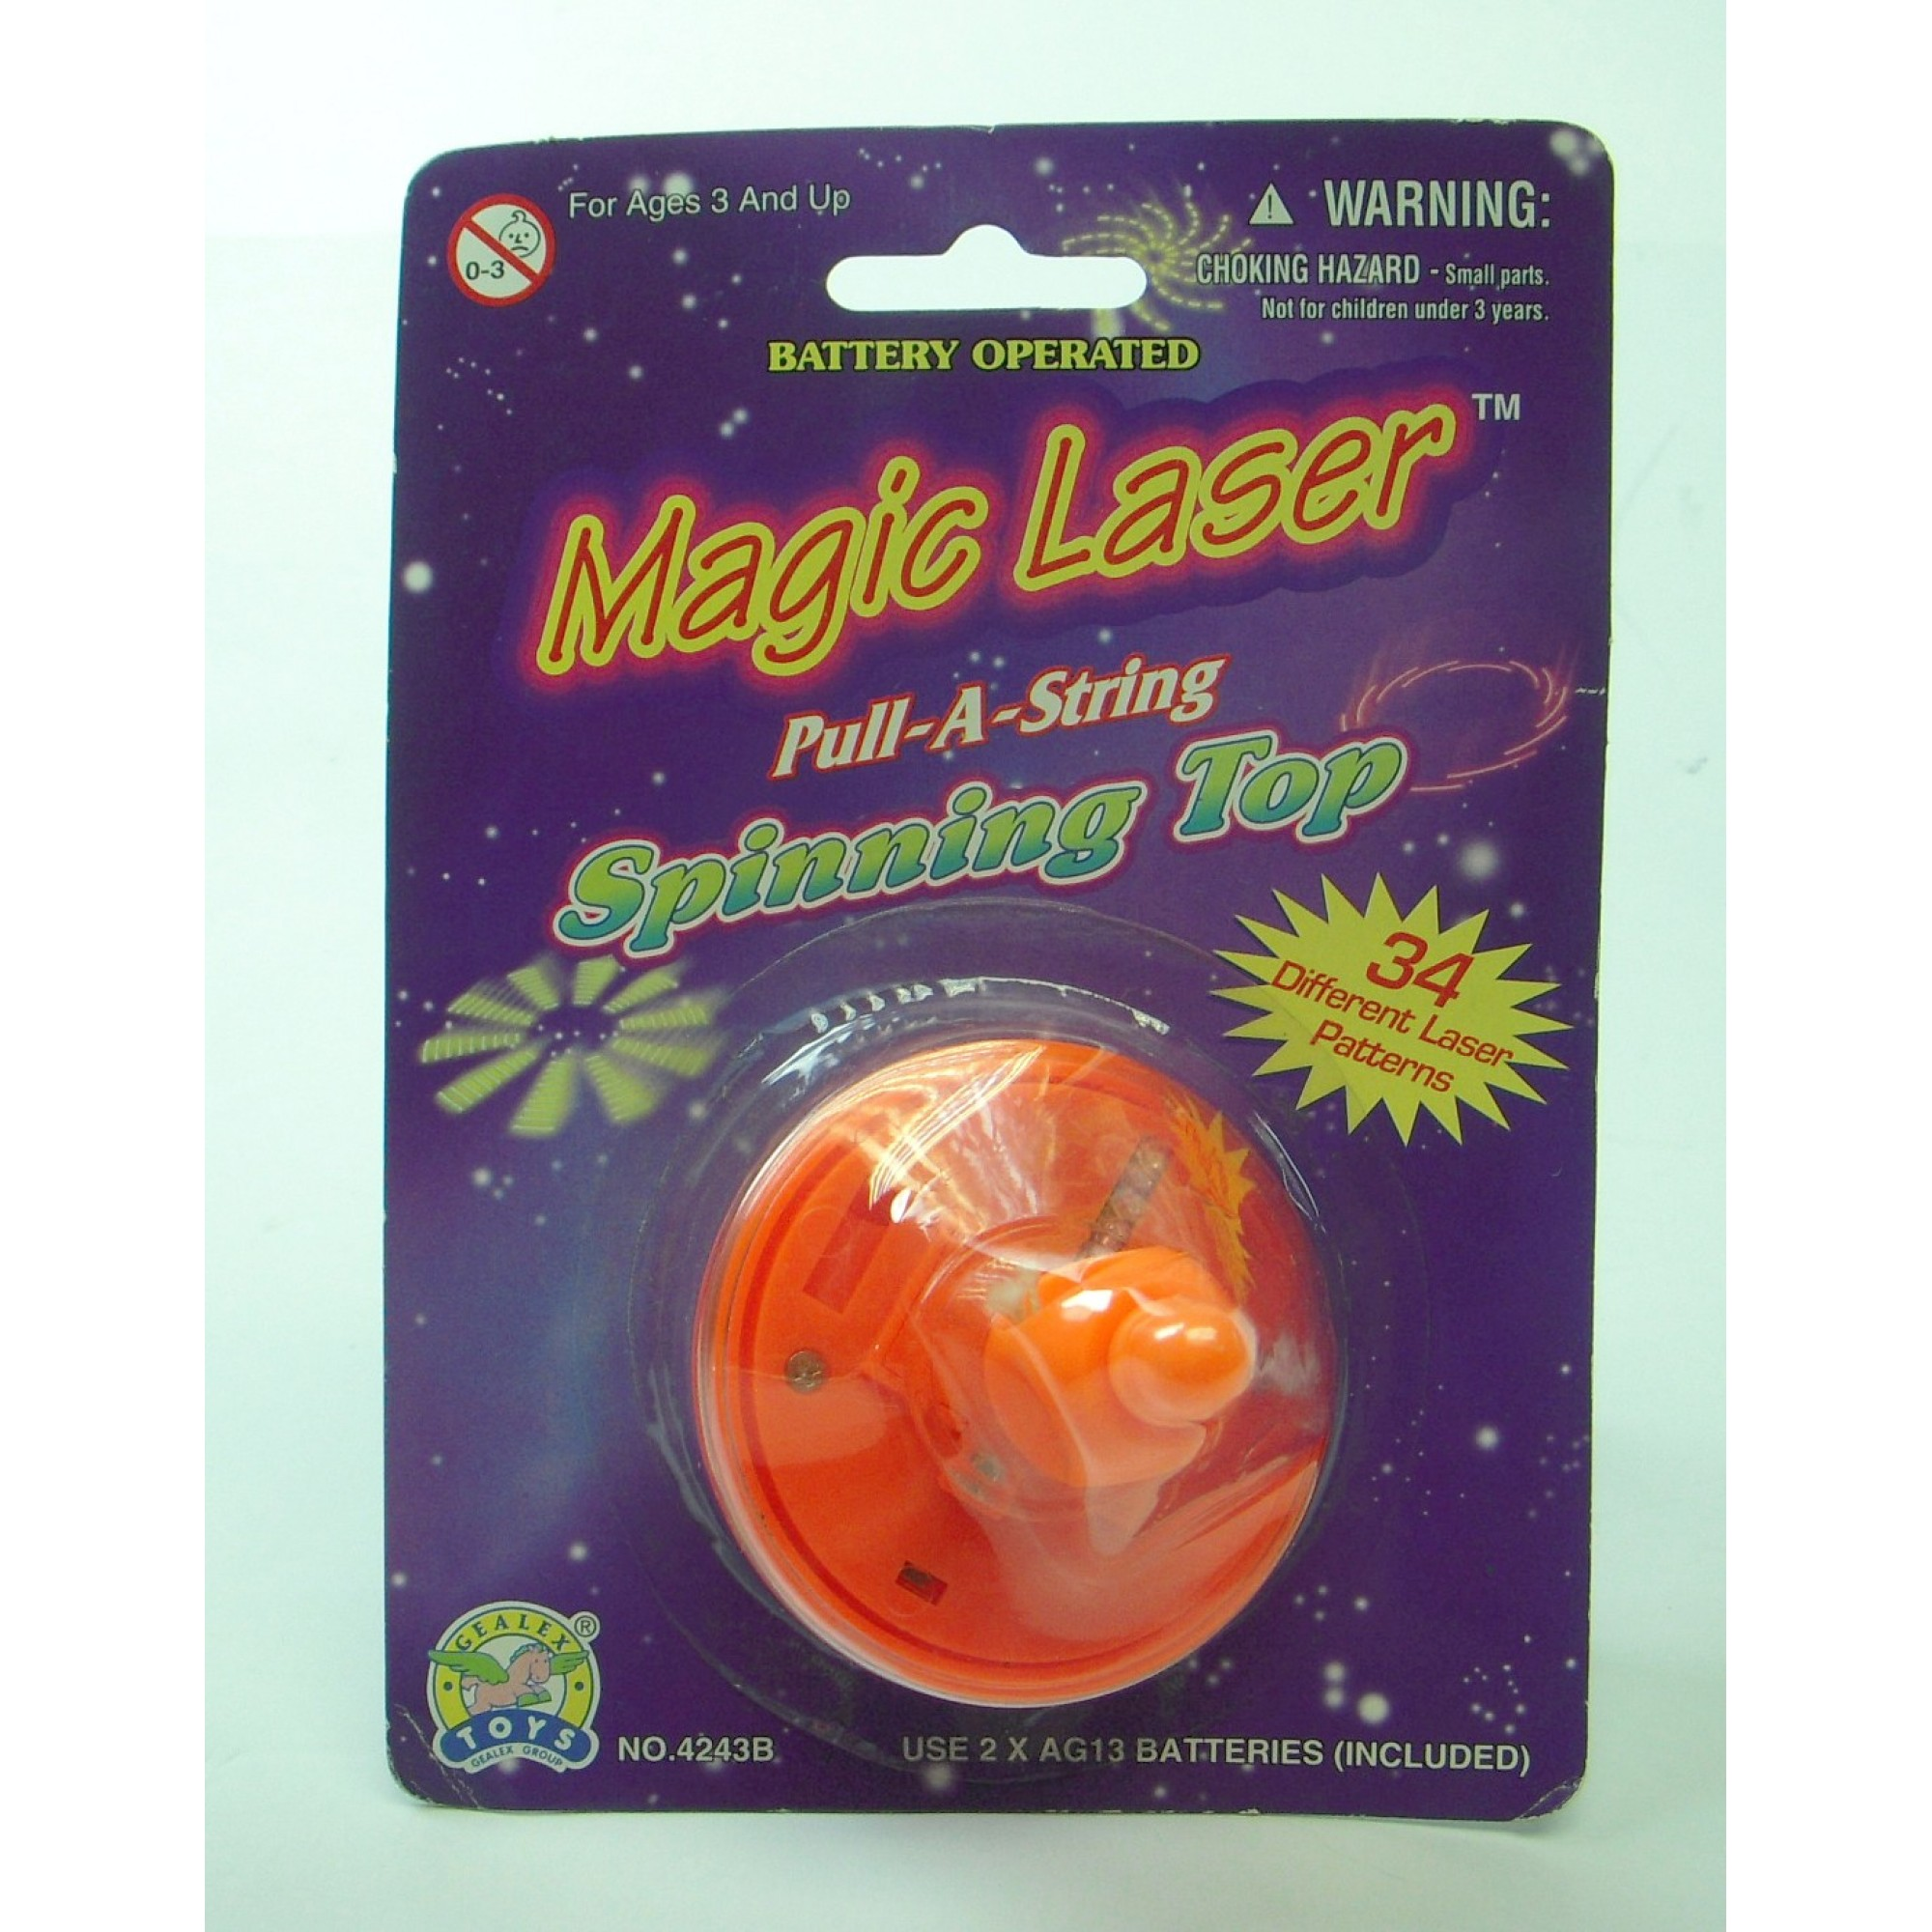 Magic Laser Pull-A-String Spinner